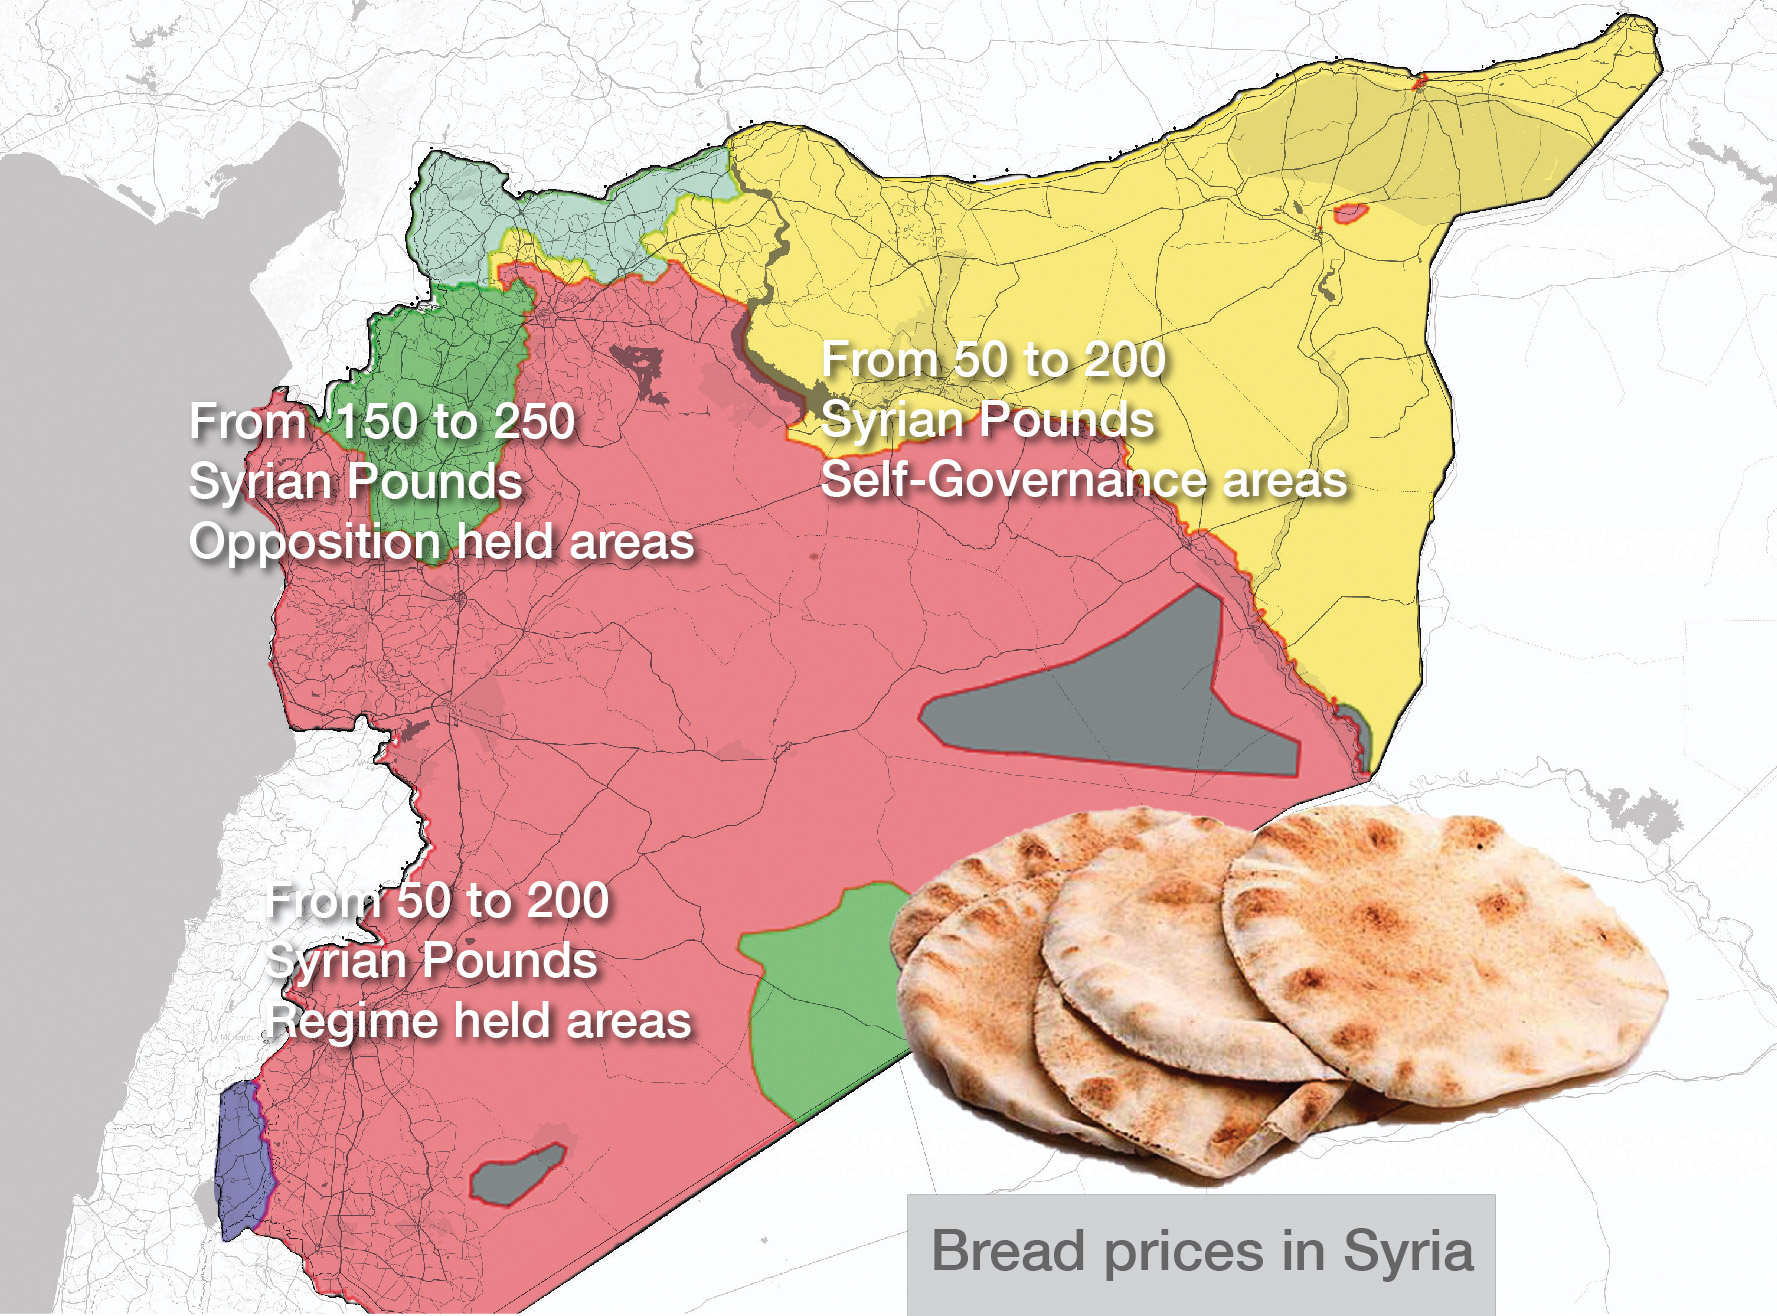 Bread prices in Syria according to the map of military control (livemap)